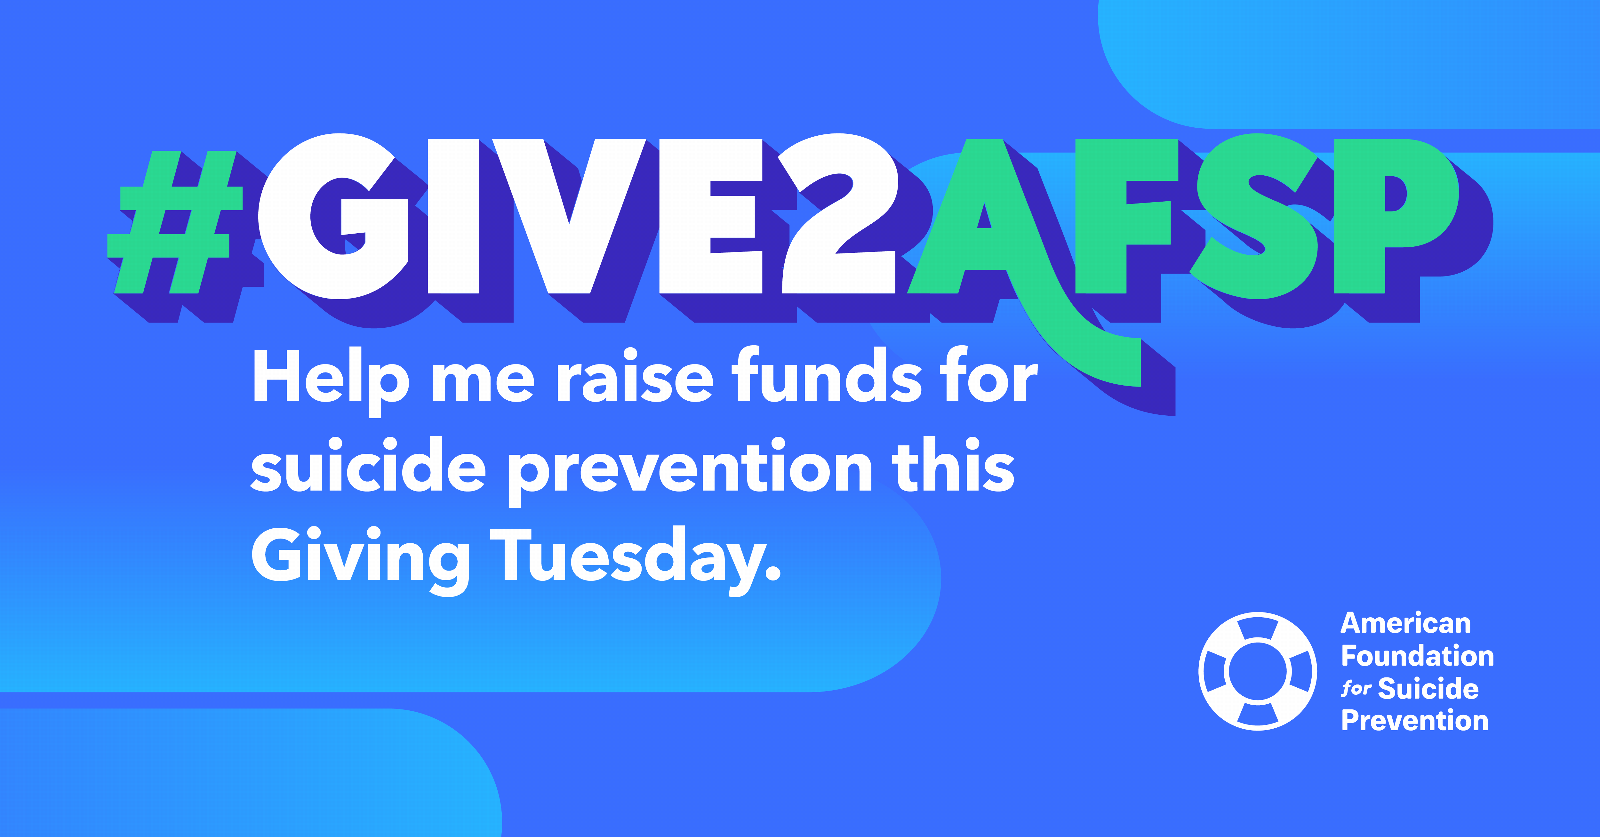 #Give2AFSP Help me raise funds for suicide prevention this Giving Tuesday